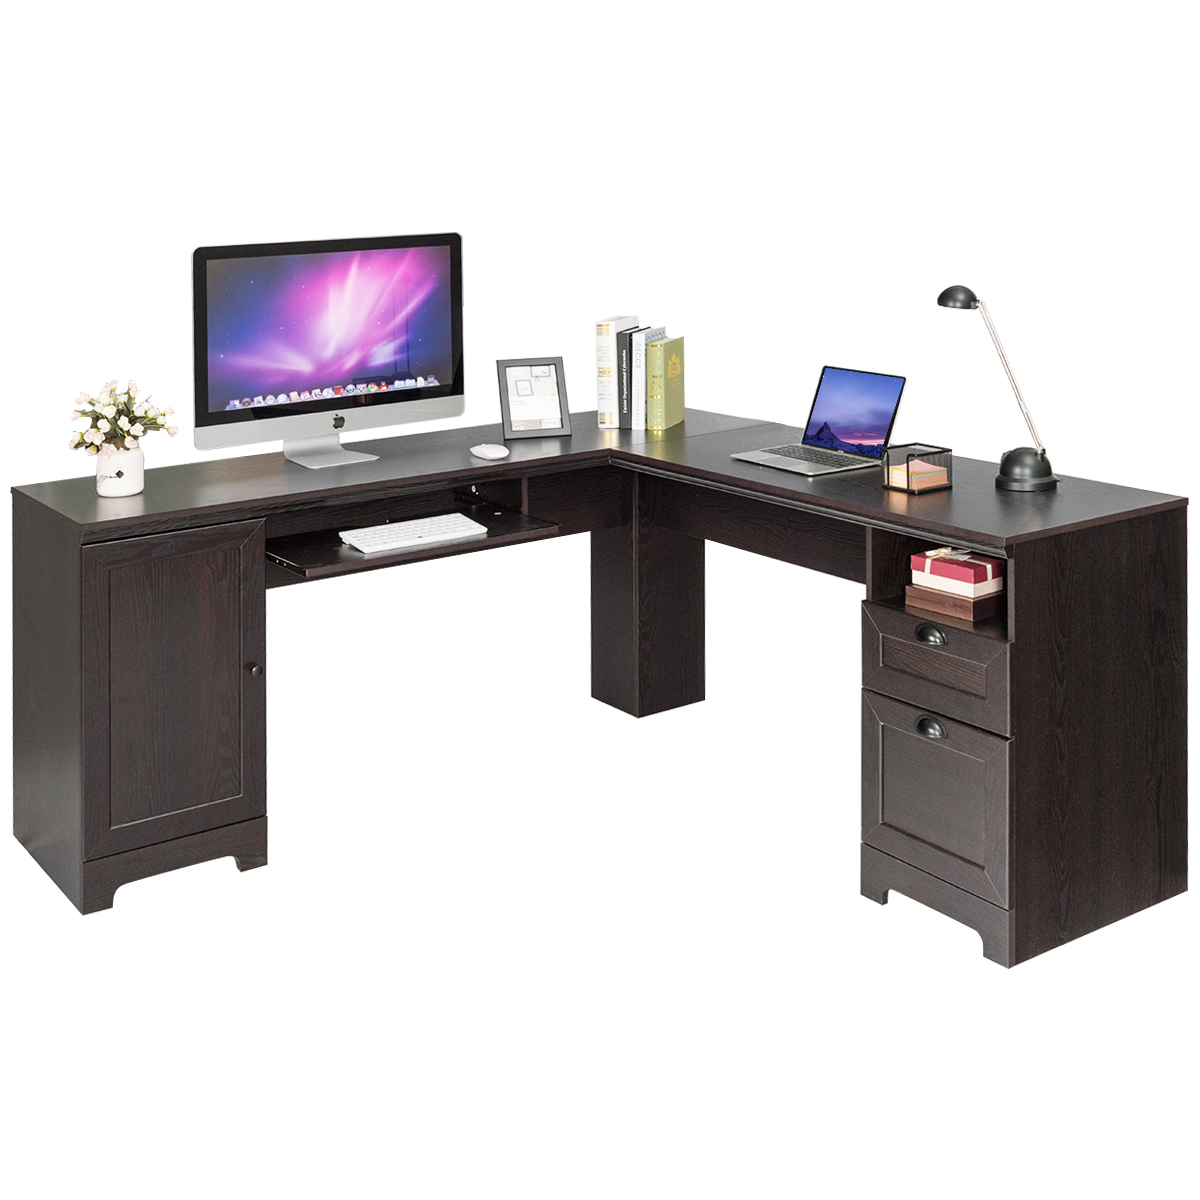 Costway L-Shaped Corner Computer Desk Writing Table Study Workstation Drawers